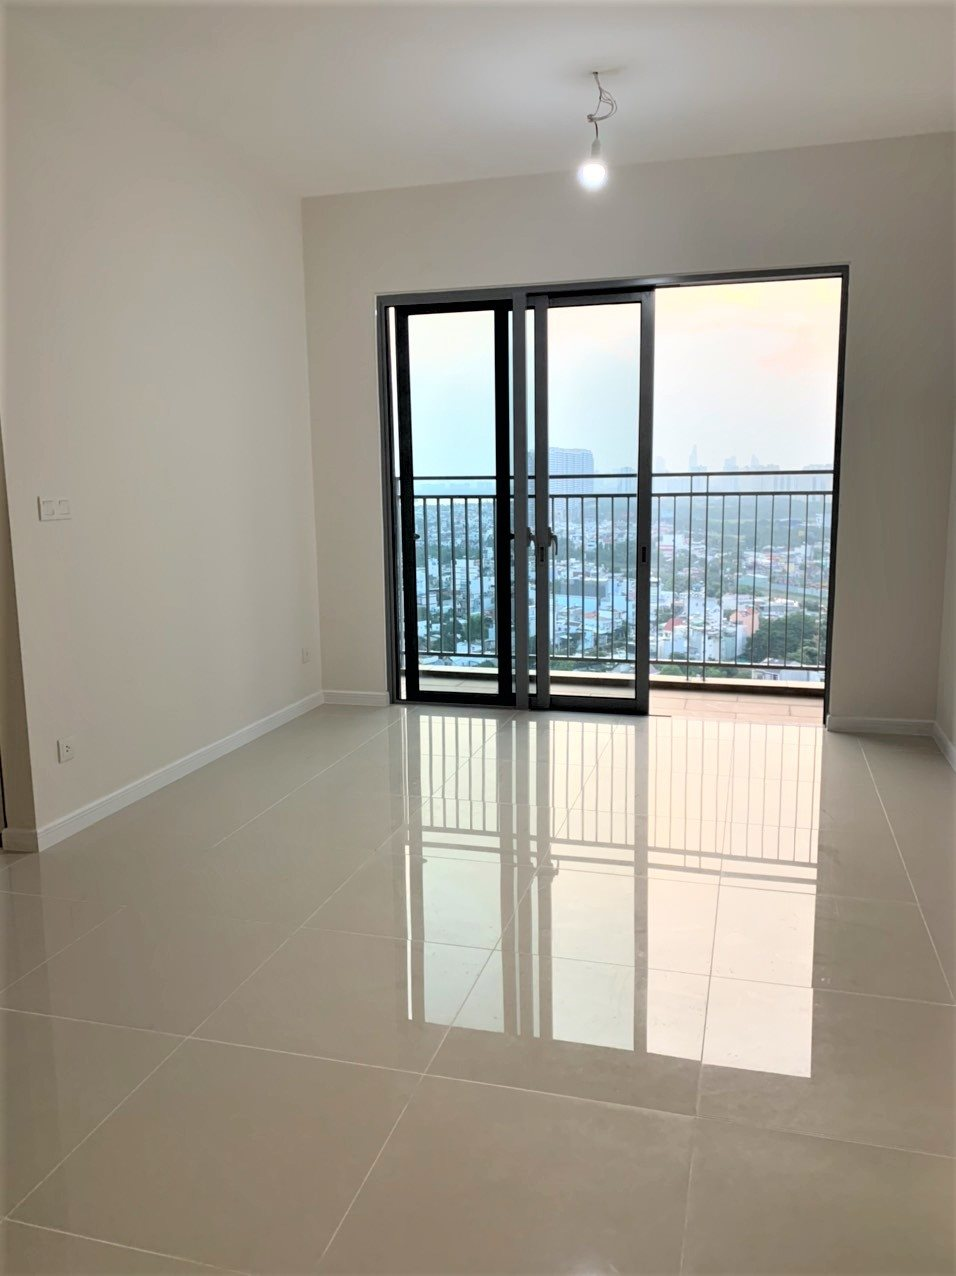 Apartment for rent D230435 (2)